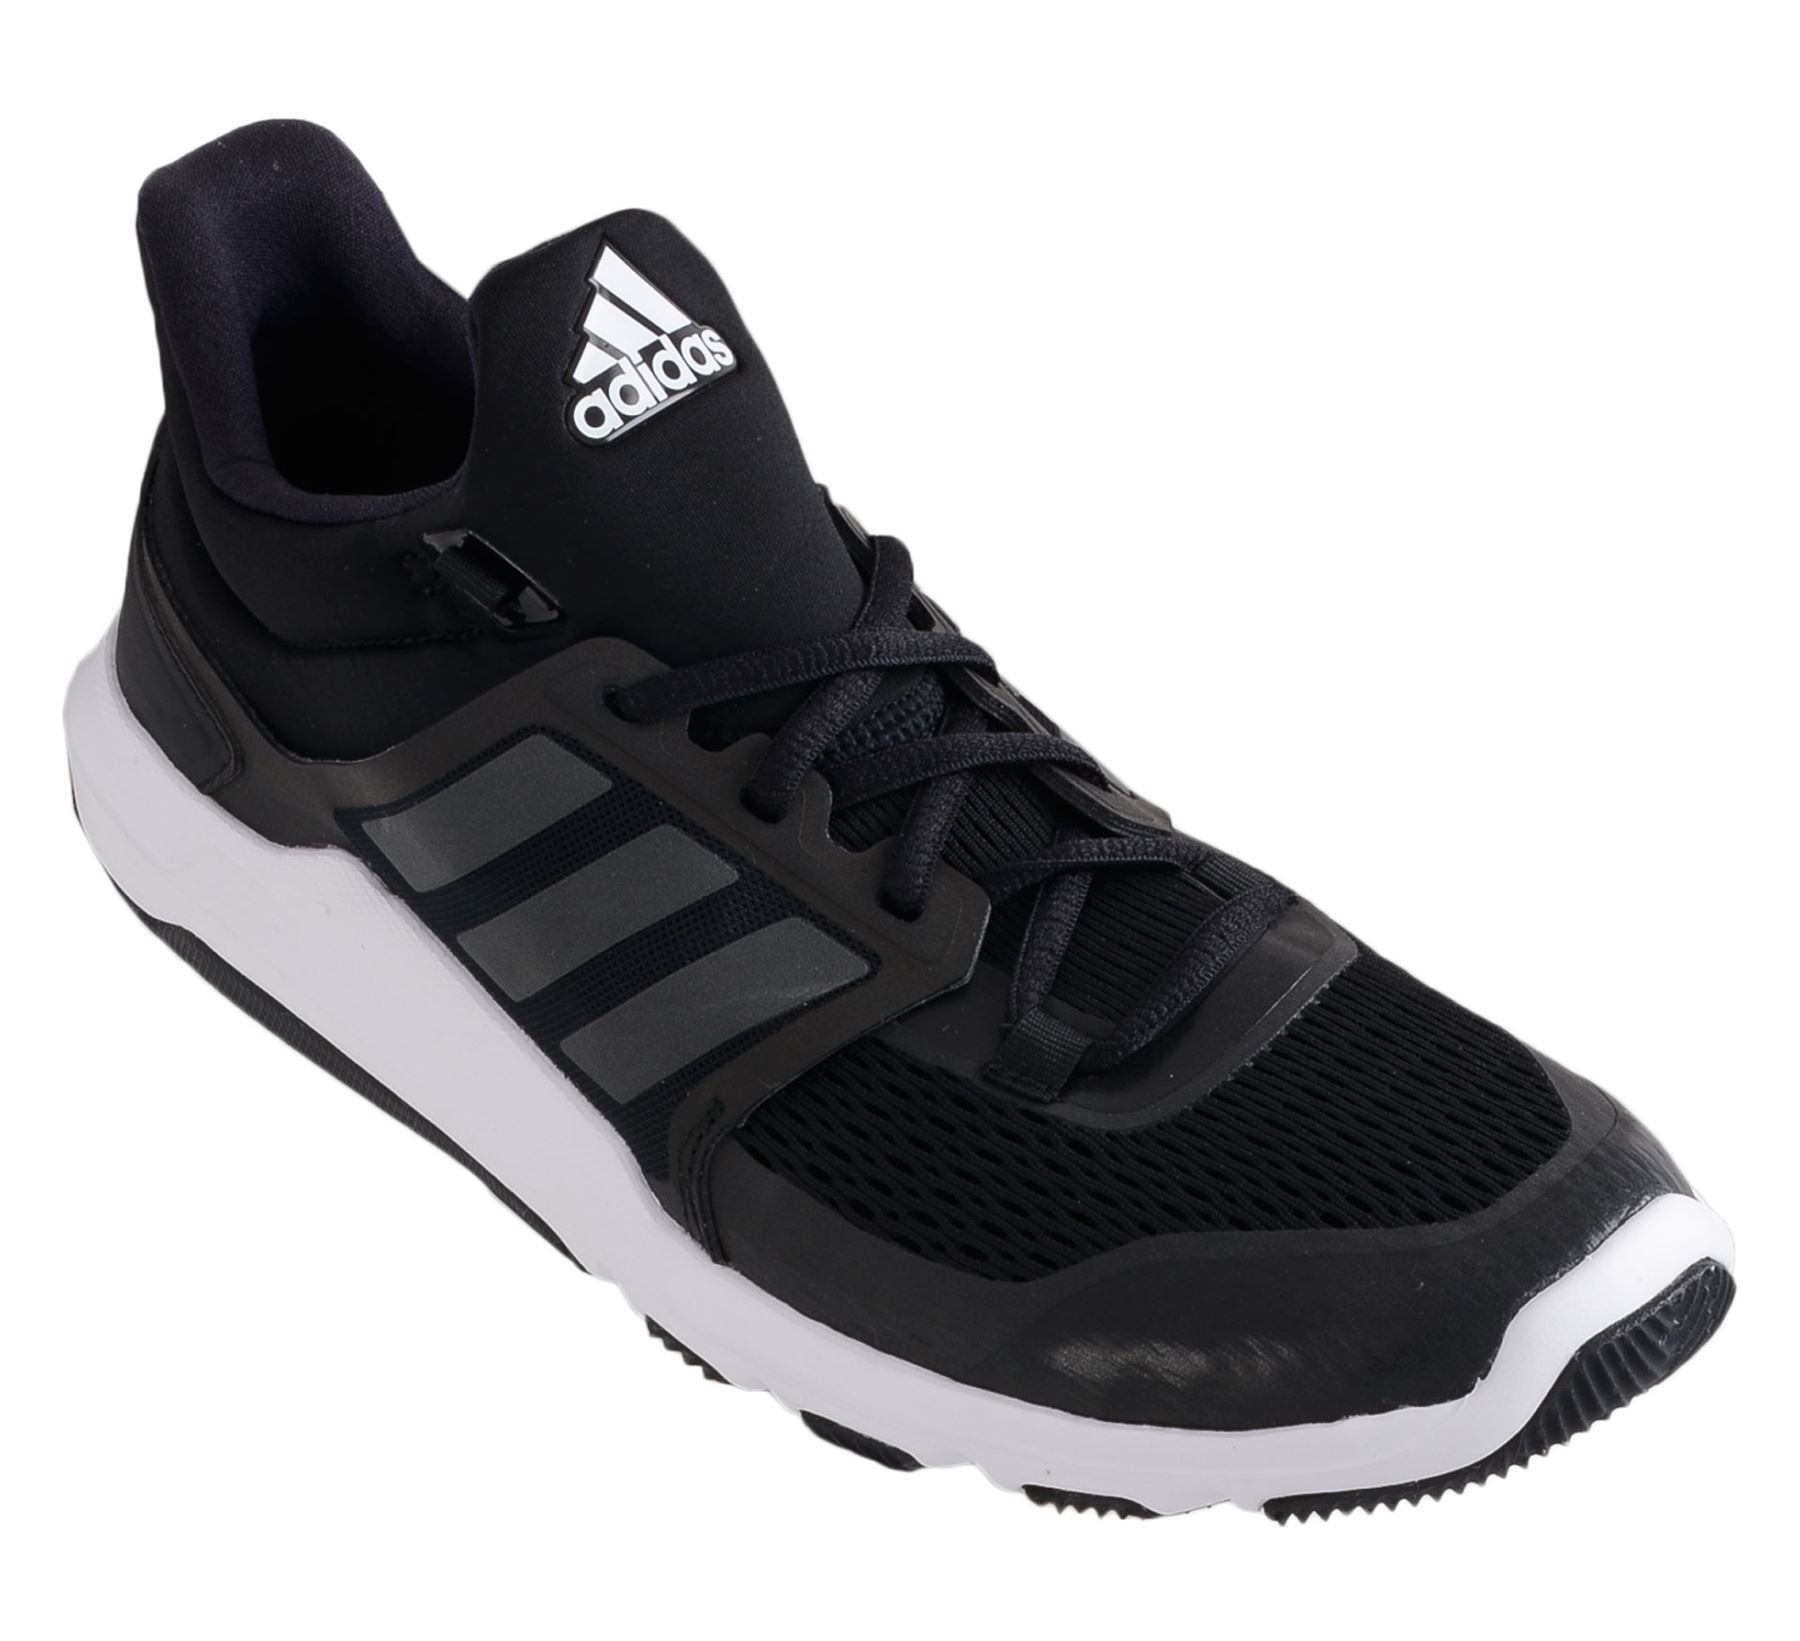 Details about adidas adipure 360.3 Training Shoes Mens Black Gym Fitness Trainers Sneakers